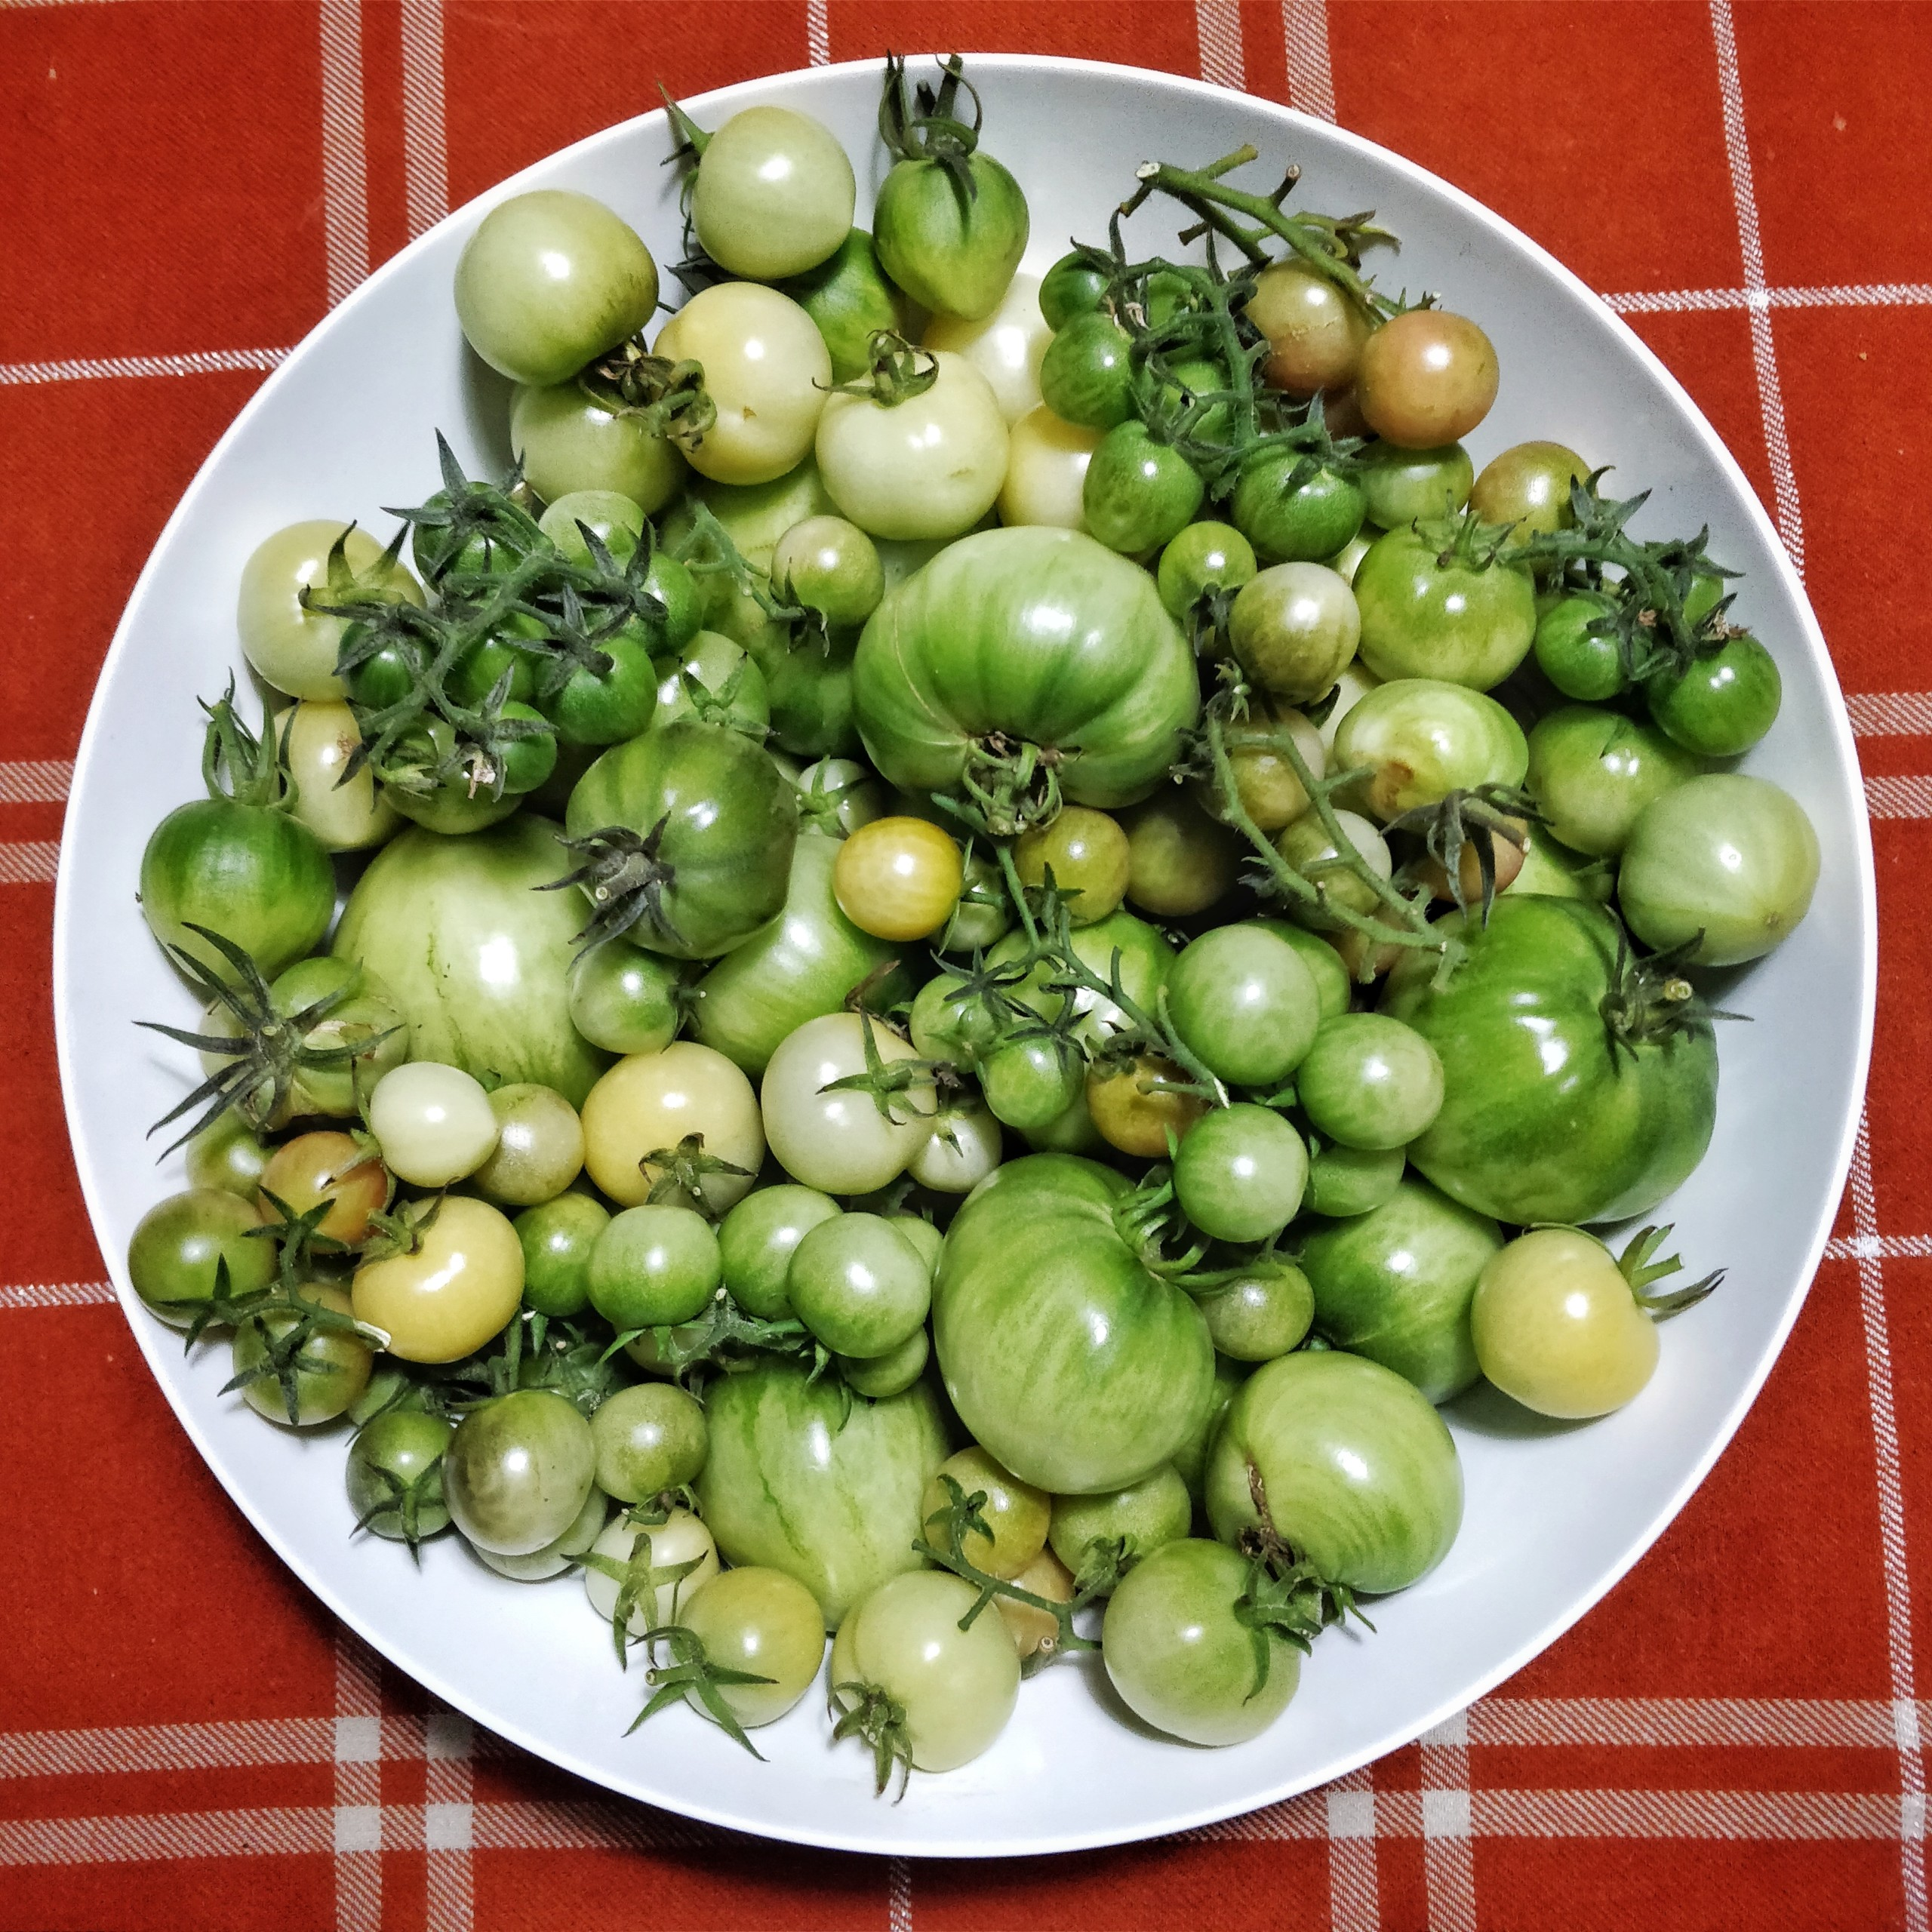 Over 2 kilos of green tomatoes in a large bowl